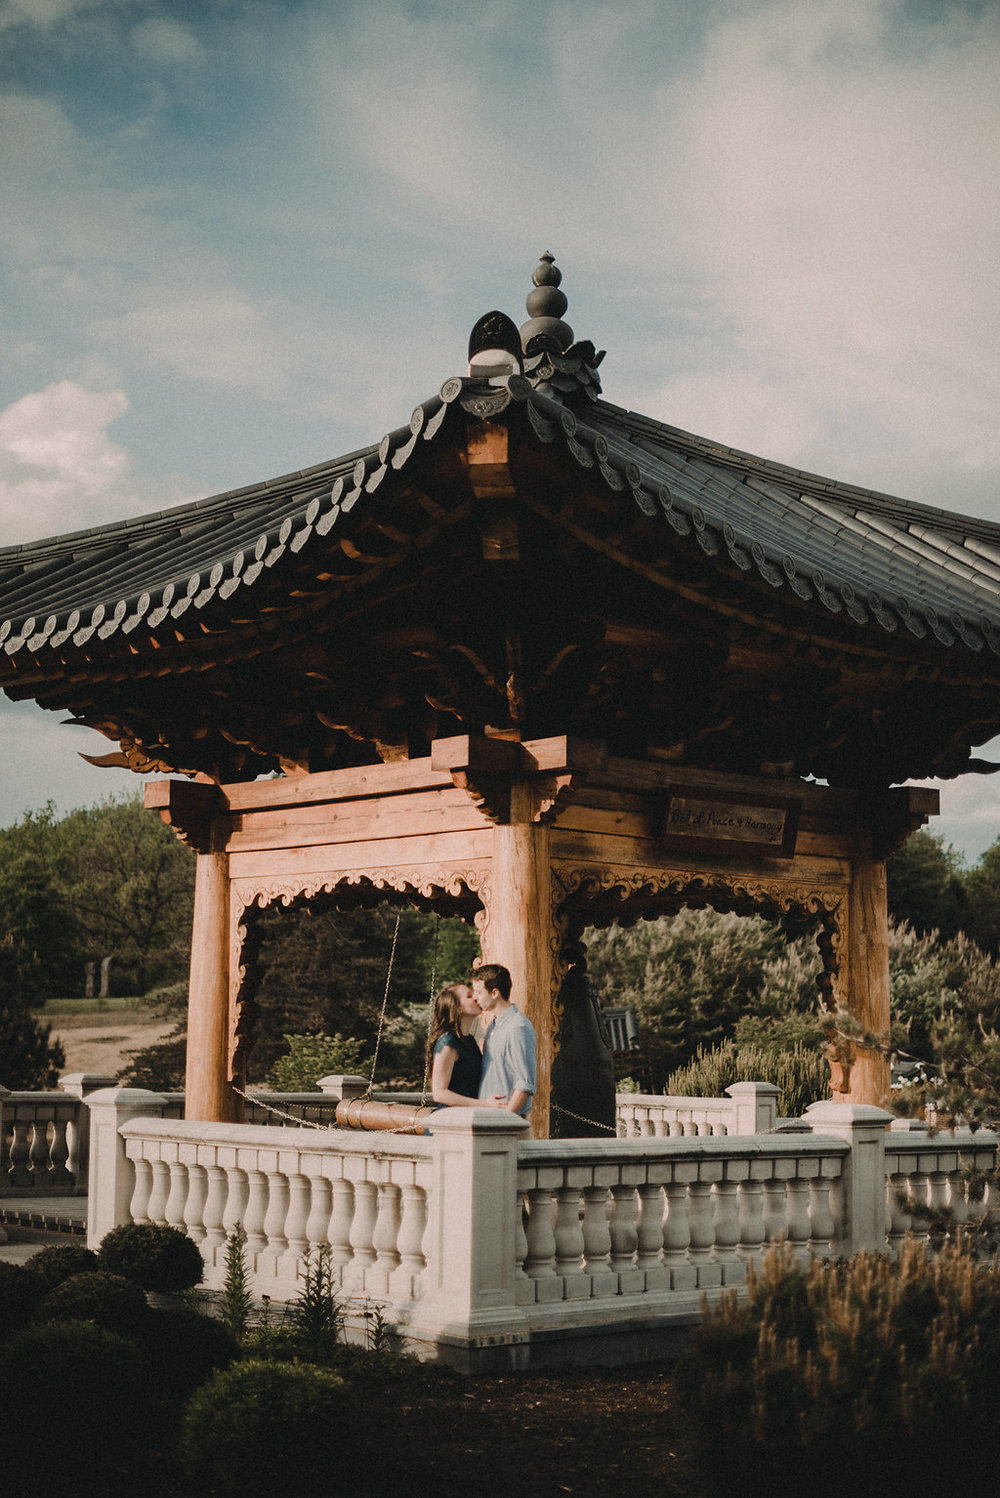 Man and woman kissing at pagoda